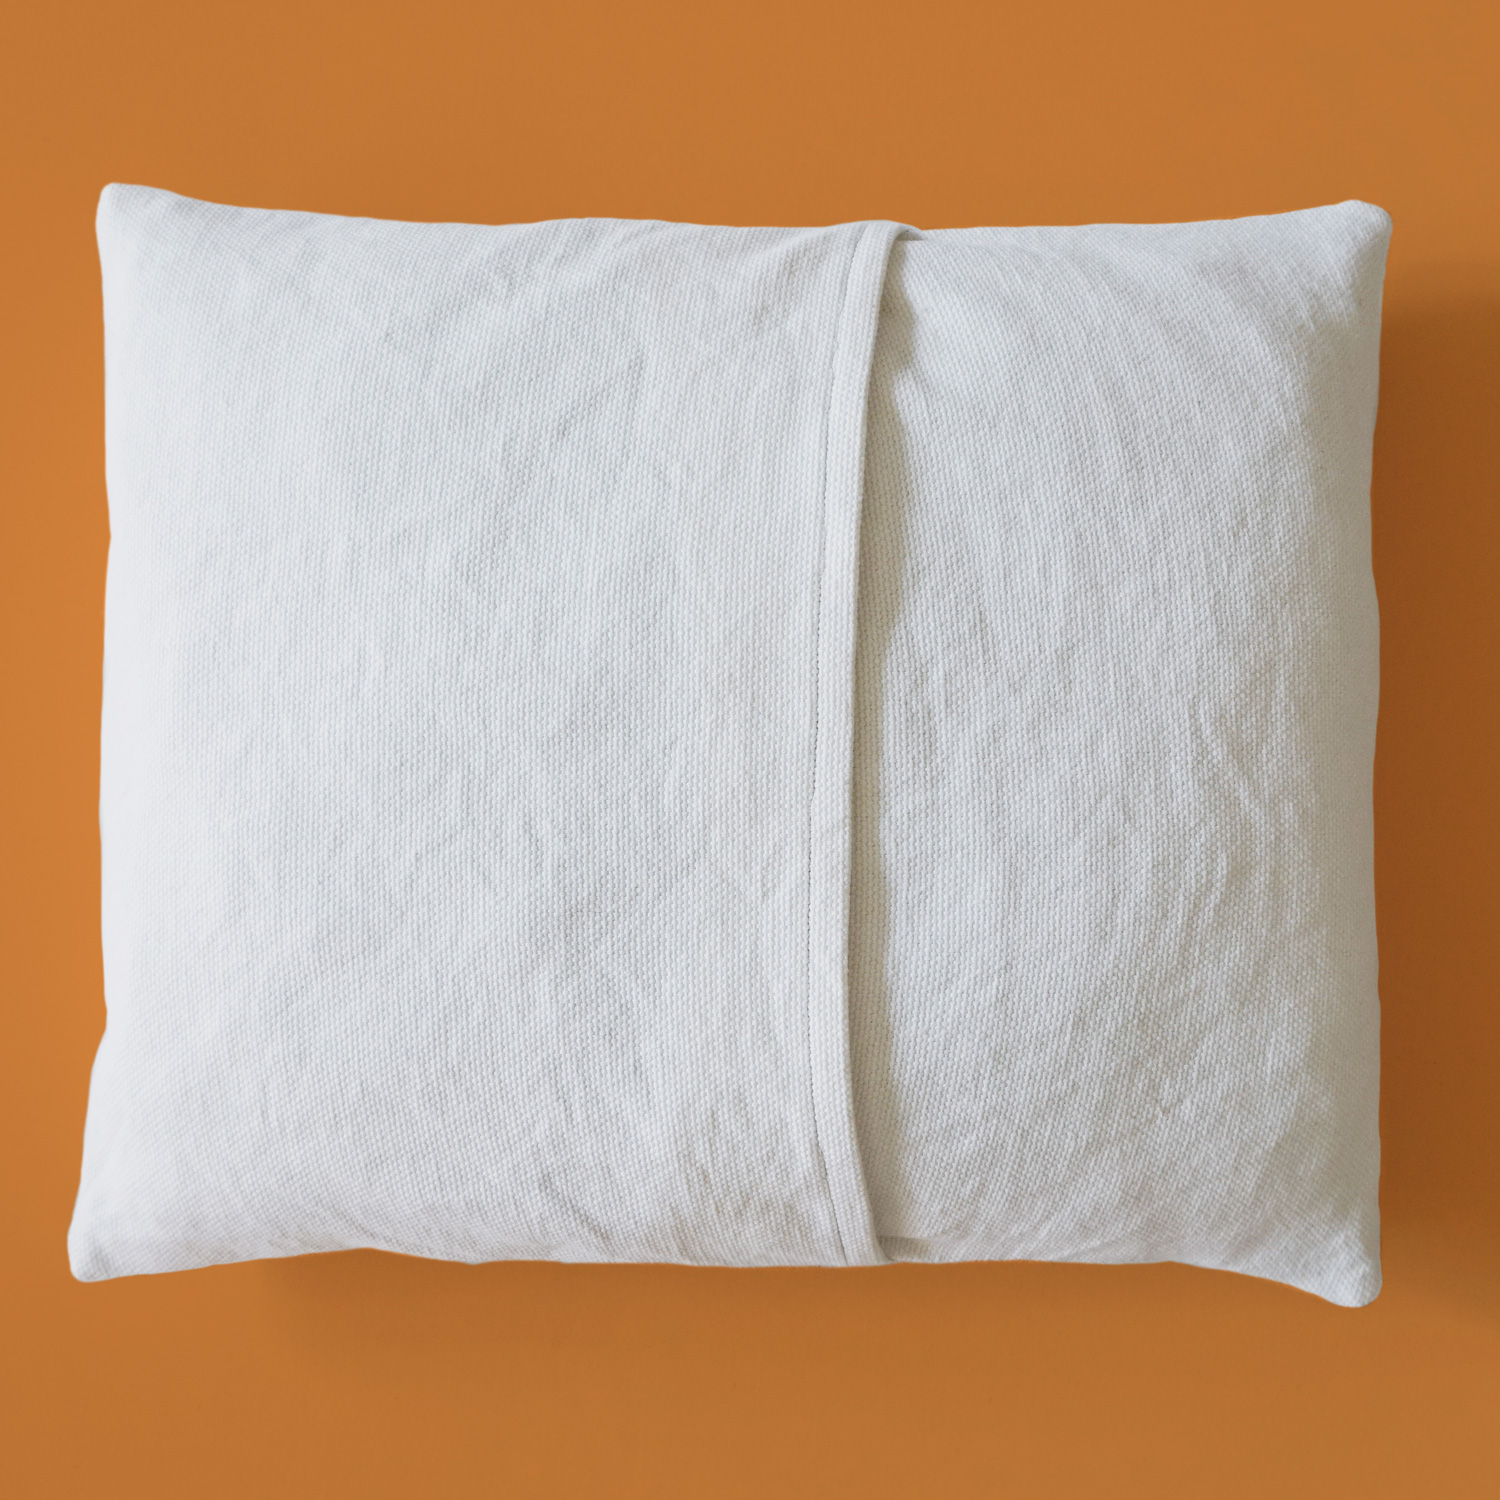 A refreshing orange pillow, that combines quilting, fabric painting and punch needle for a range of subtle textures.